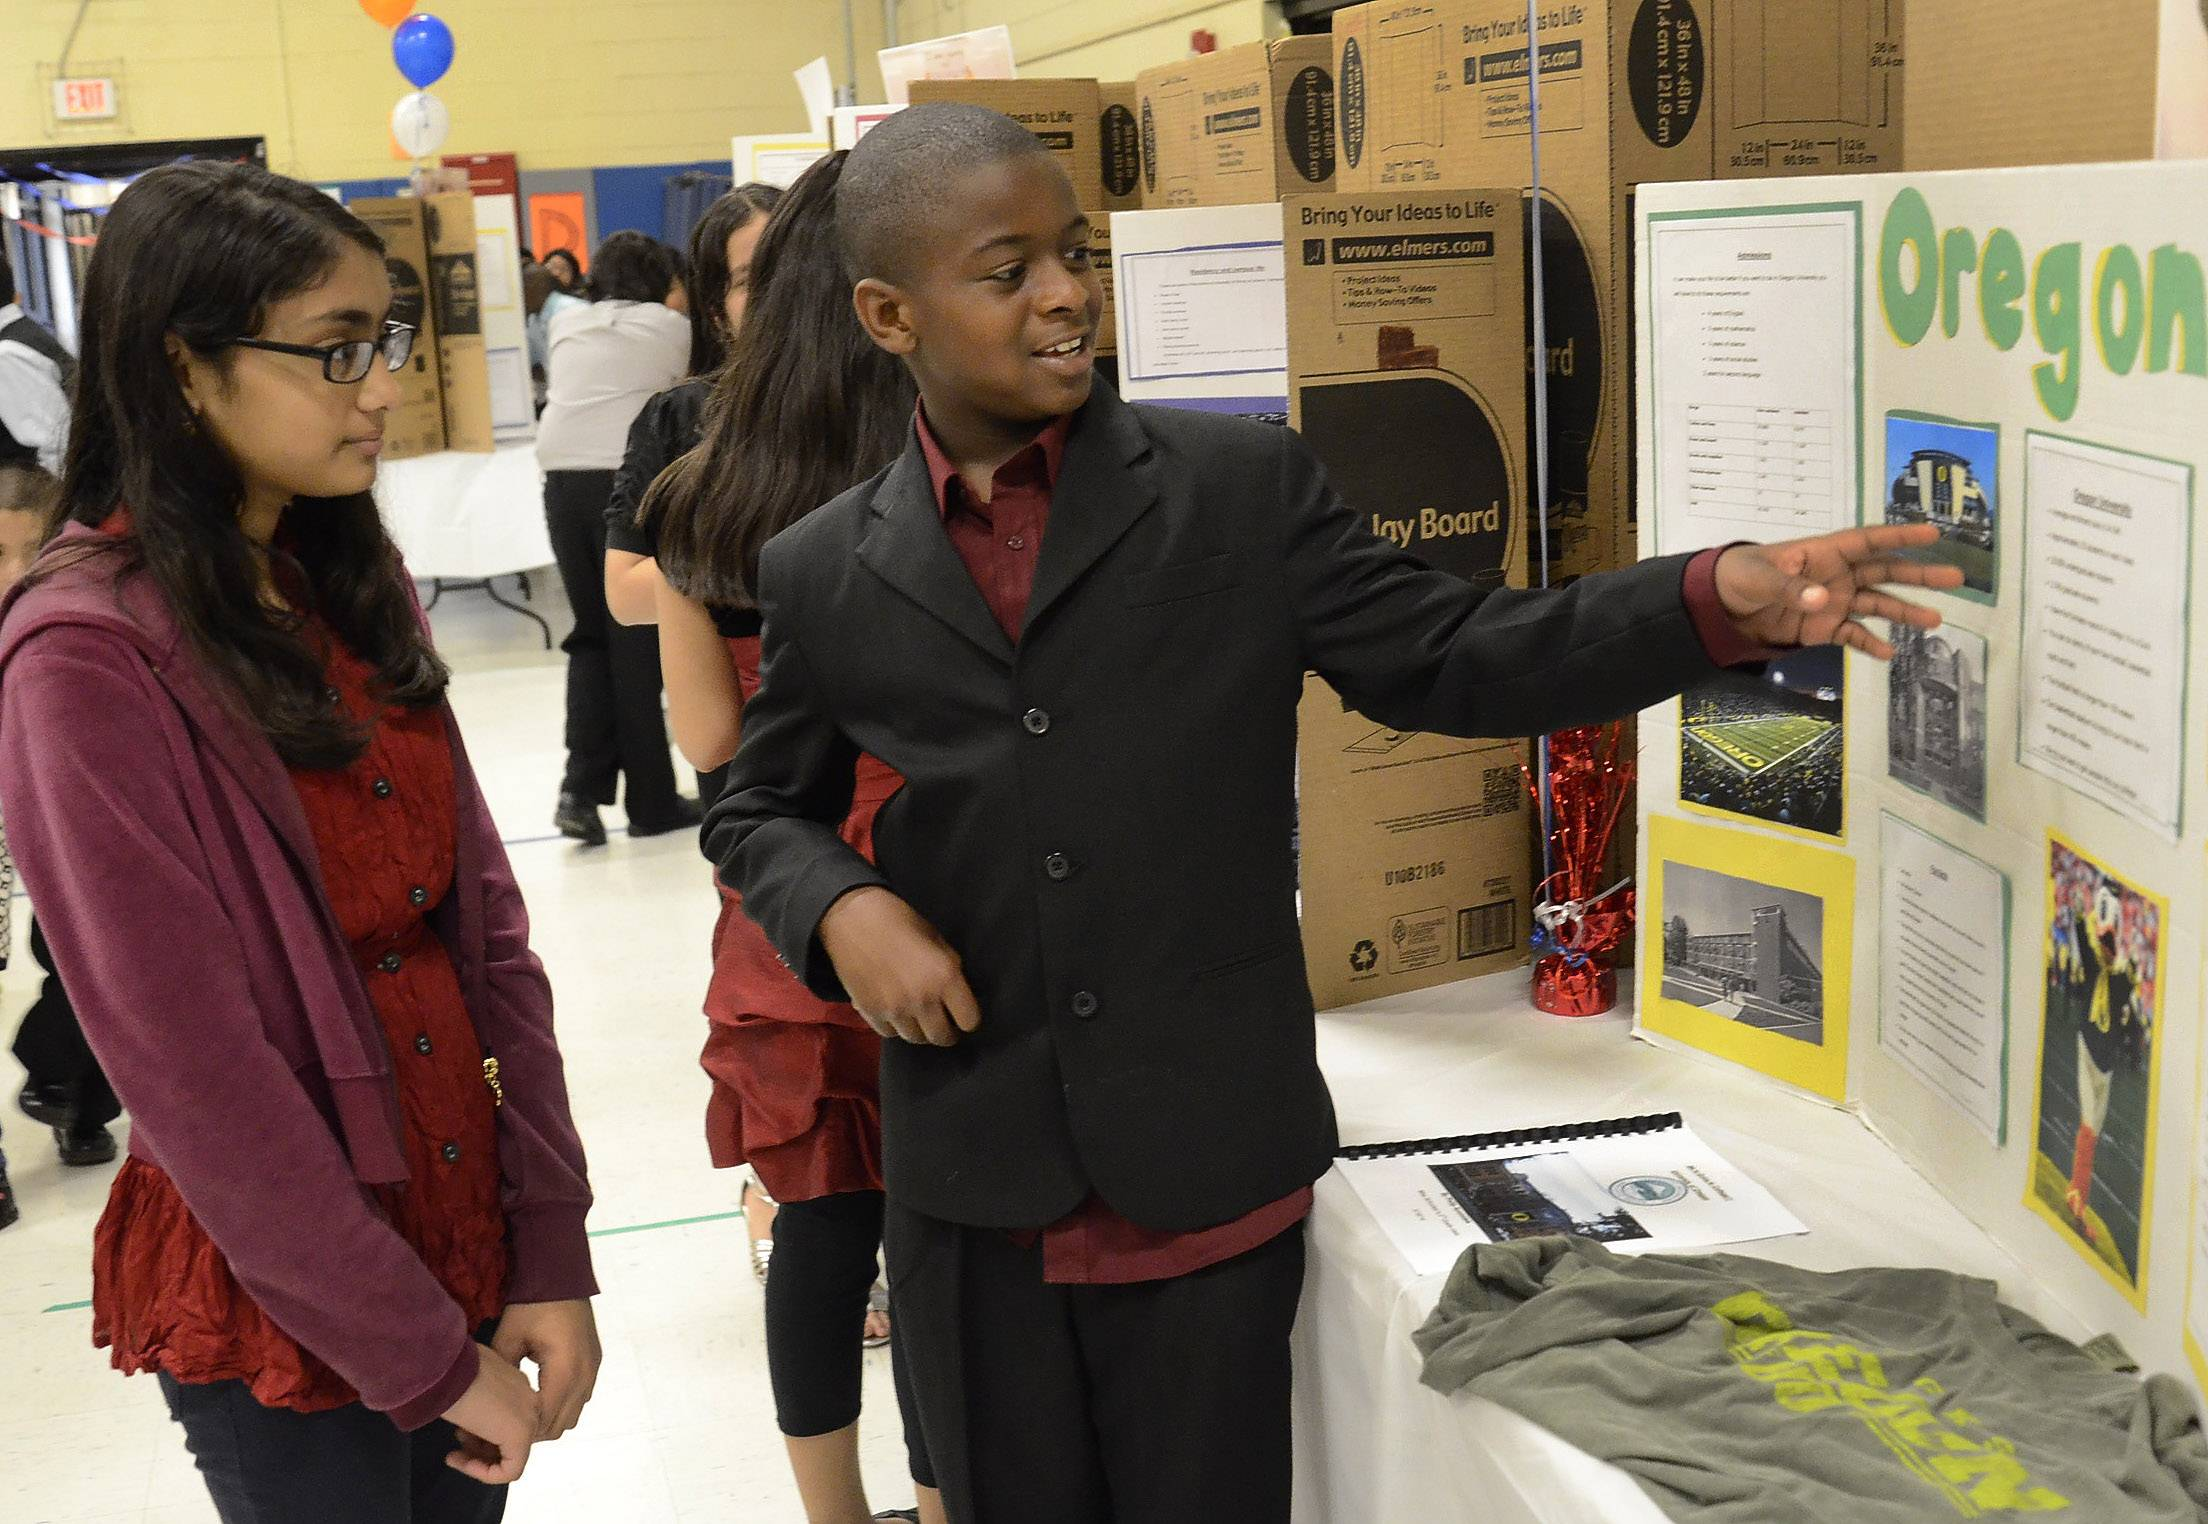 Philip Ayomidele explains the finer points of the University of Oregon to Diya Sonani, as fifth-graders hosted a college fair recently at Ontarioville Elementary School in Hanover Park.